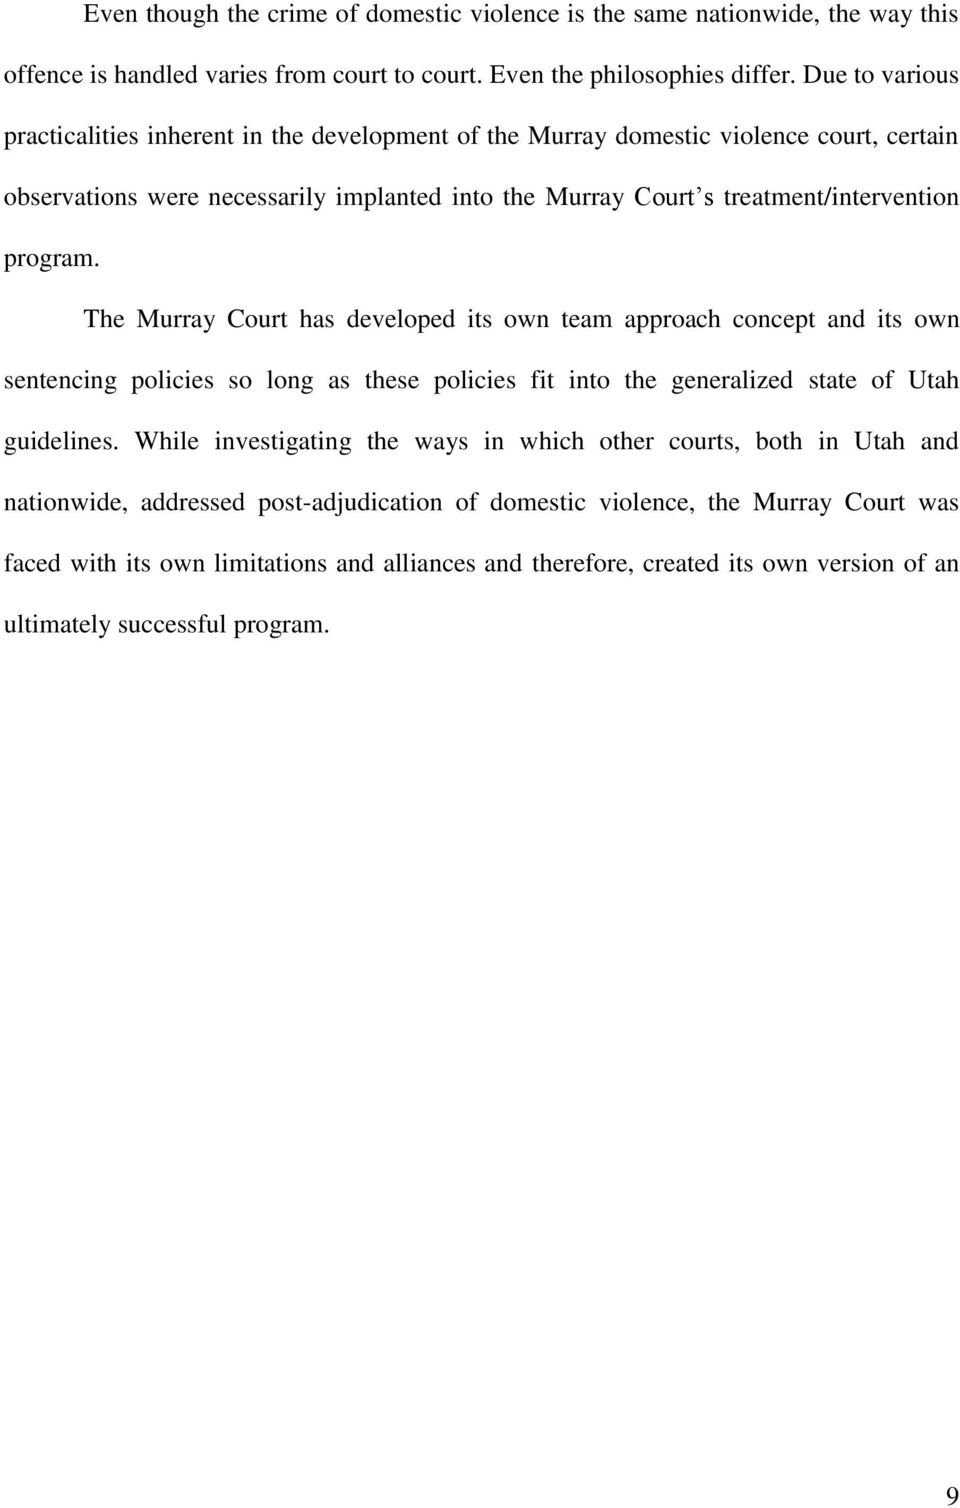 The Murray Court has developed its own team approach concept and its own sentencing policies so long as these policies fit into the generalized state of Utah guidelines.